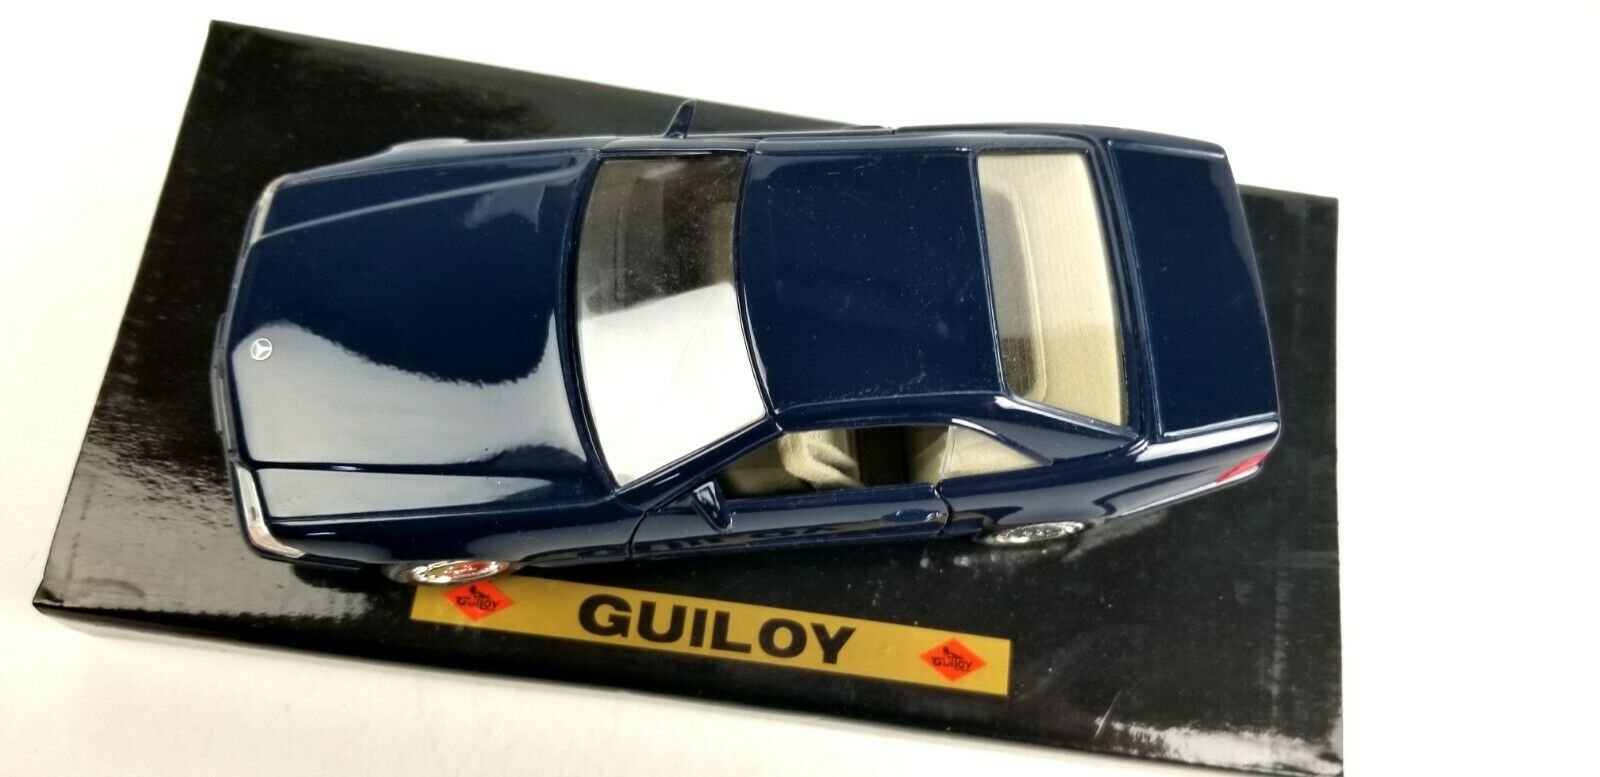 New Guiloy Mercedes Benz 500SL Coupe bluee 1 24 24 24 Scale Diecast Model Car Replica 5106f6